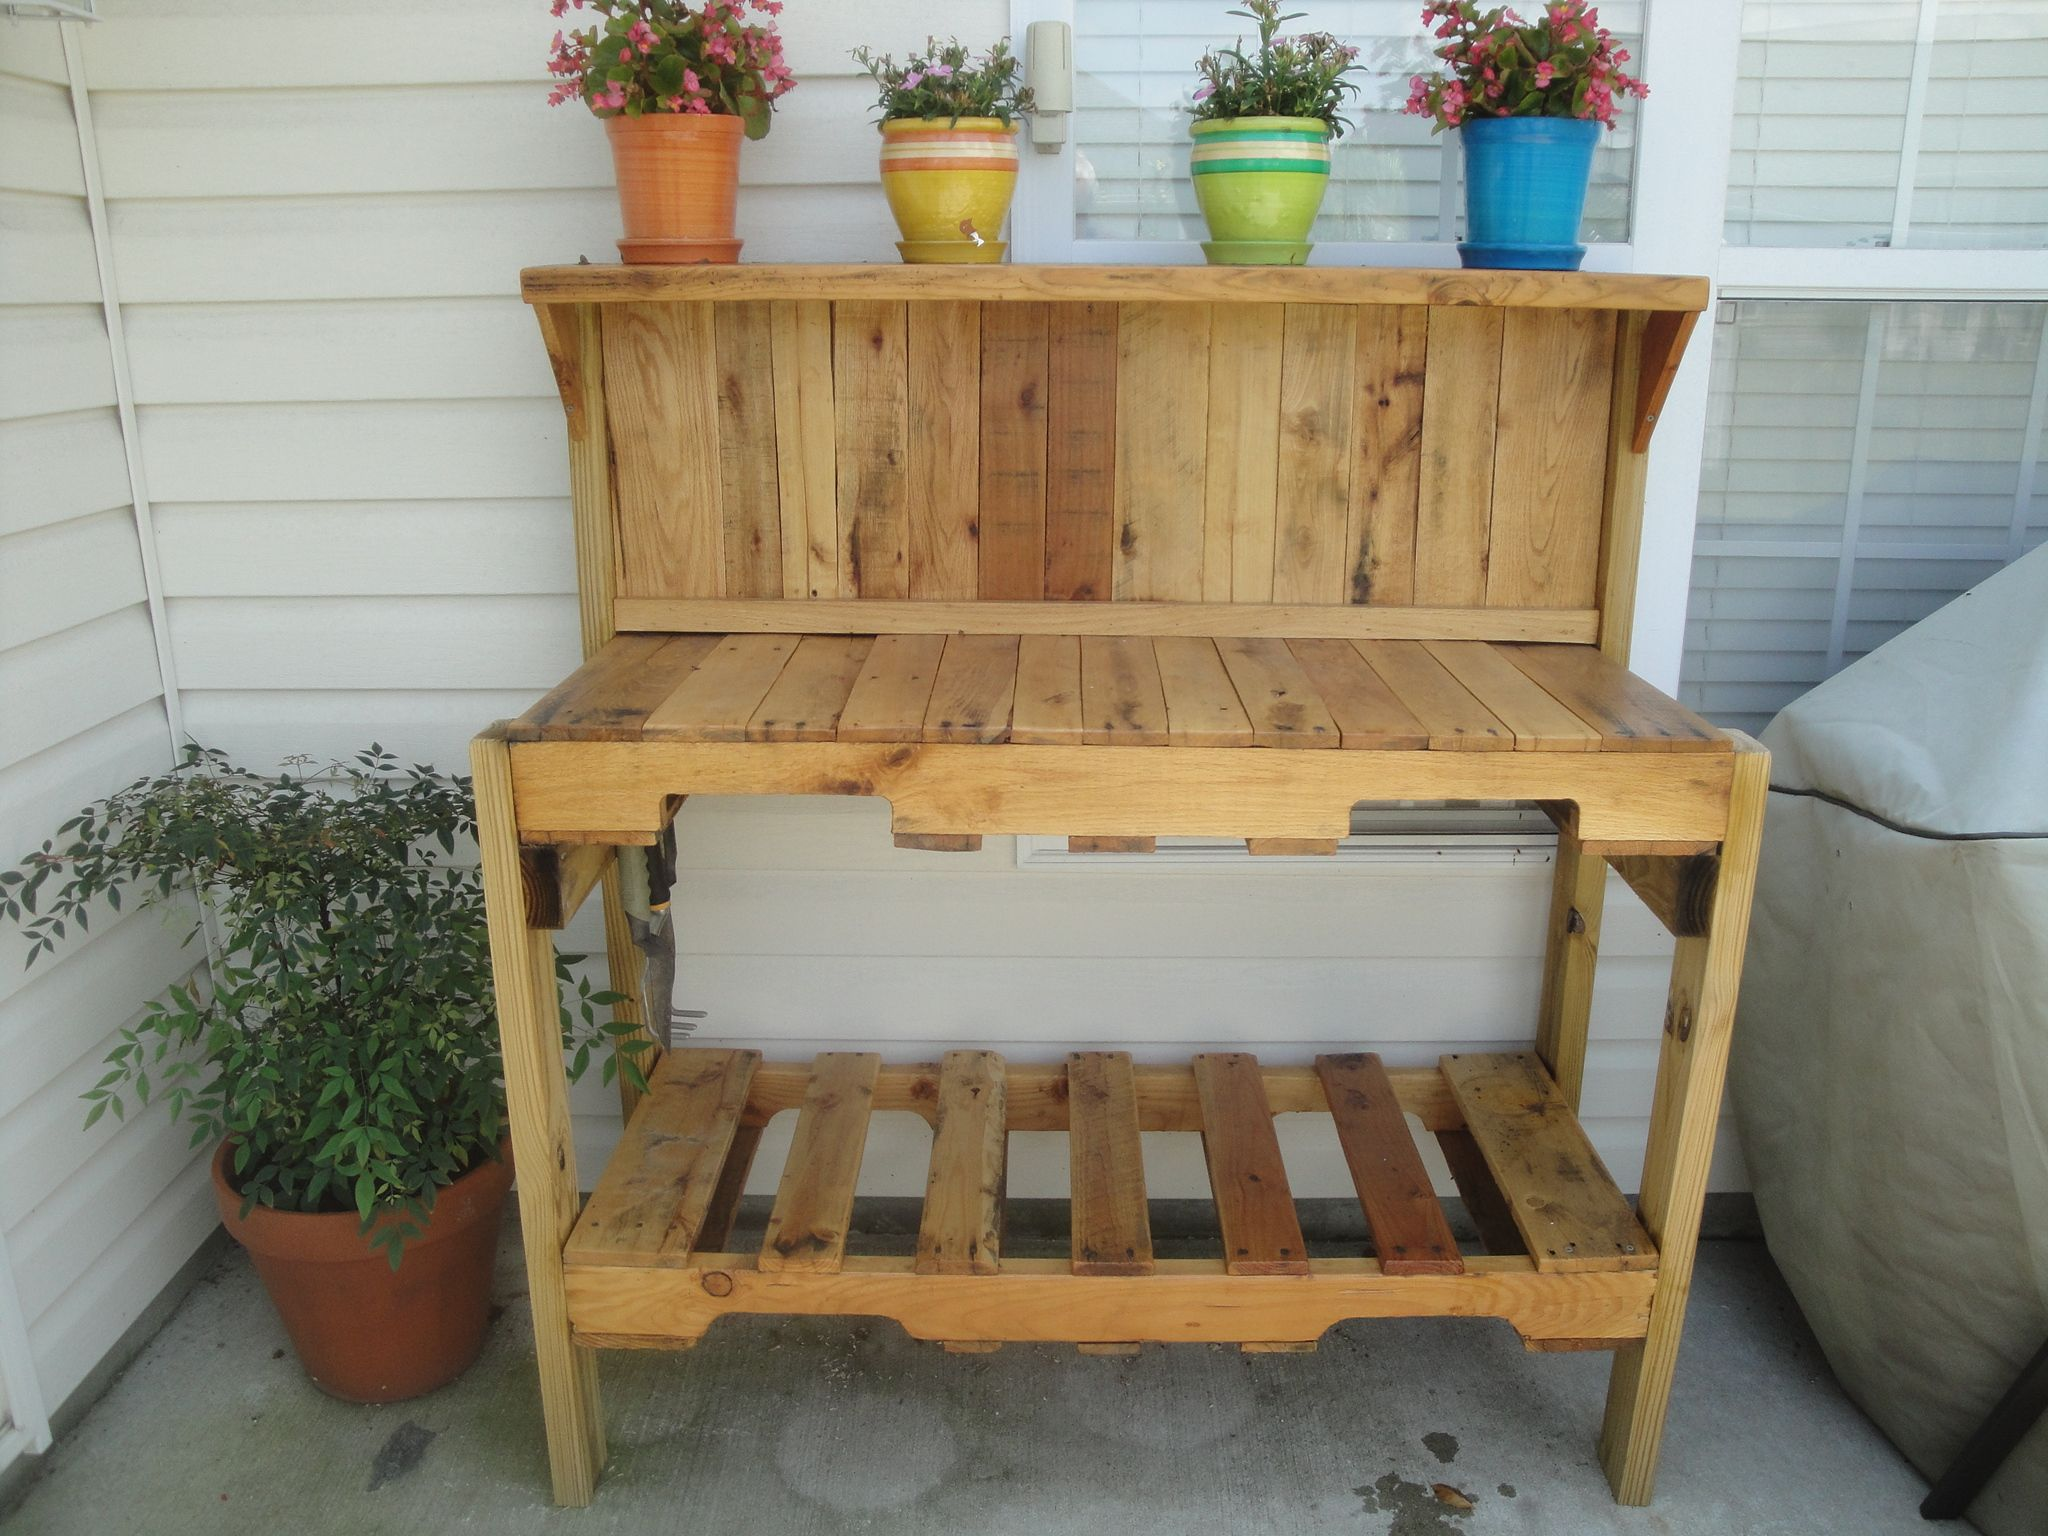 gardening bench made from pallets | Home Decor that I love ...